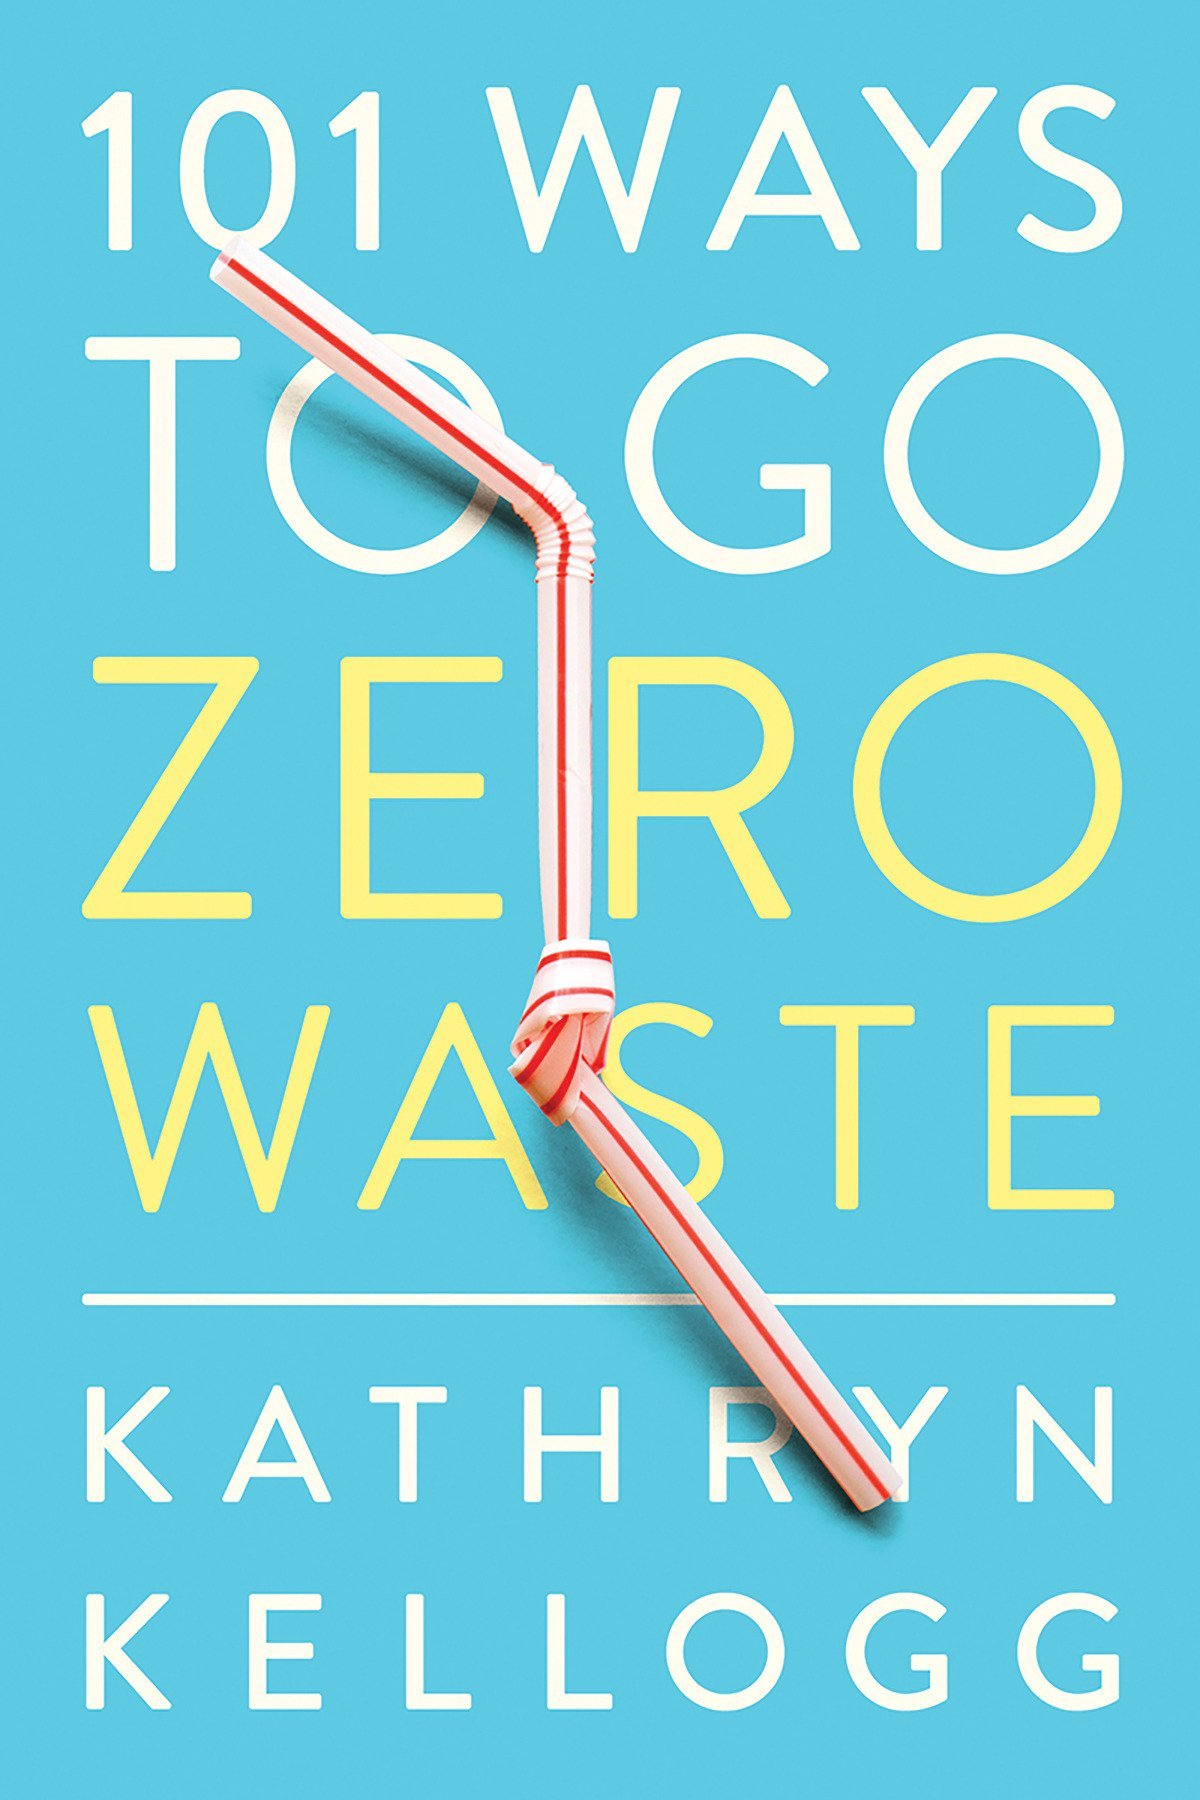 101 Ways to Go Zero Waste by Kathryn Kellogg #zerowaaste #goingzerowaste #kathrynkellogg #ecofriendly